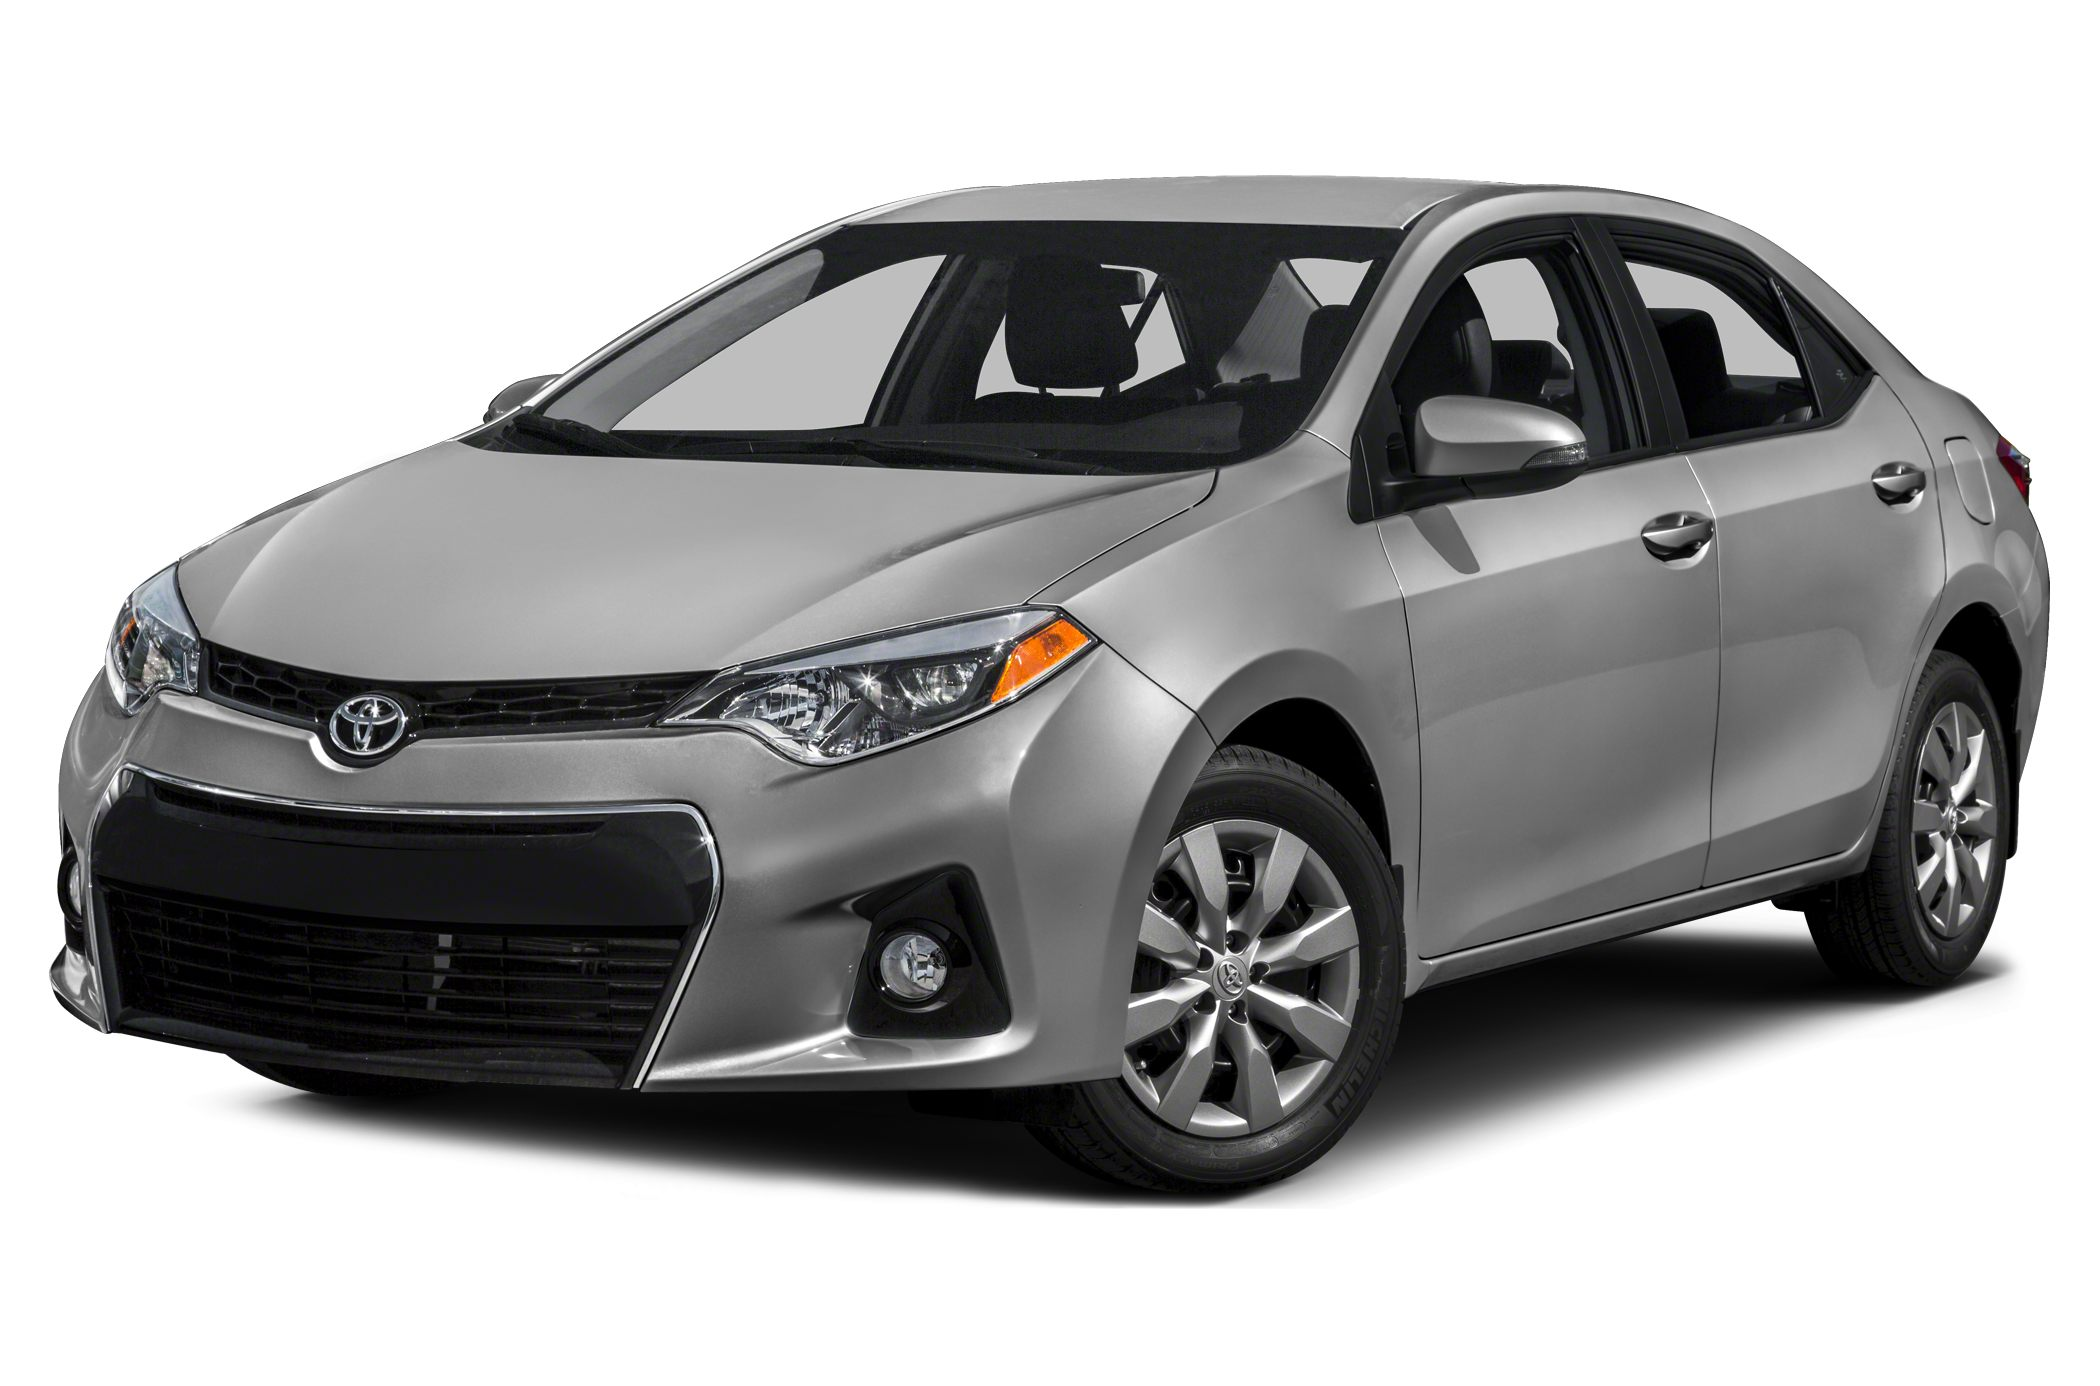 2015 Toyota Corolla S Plus Sedan for sale in Allentown for $22,639 with 0 miles